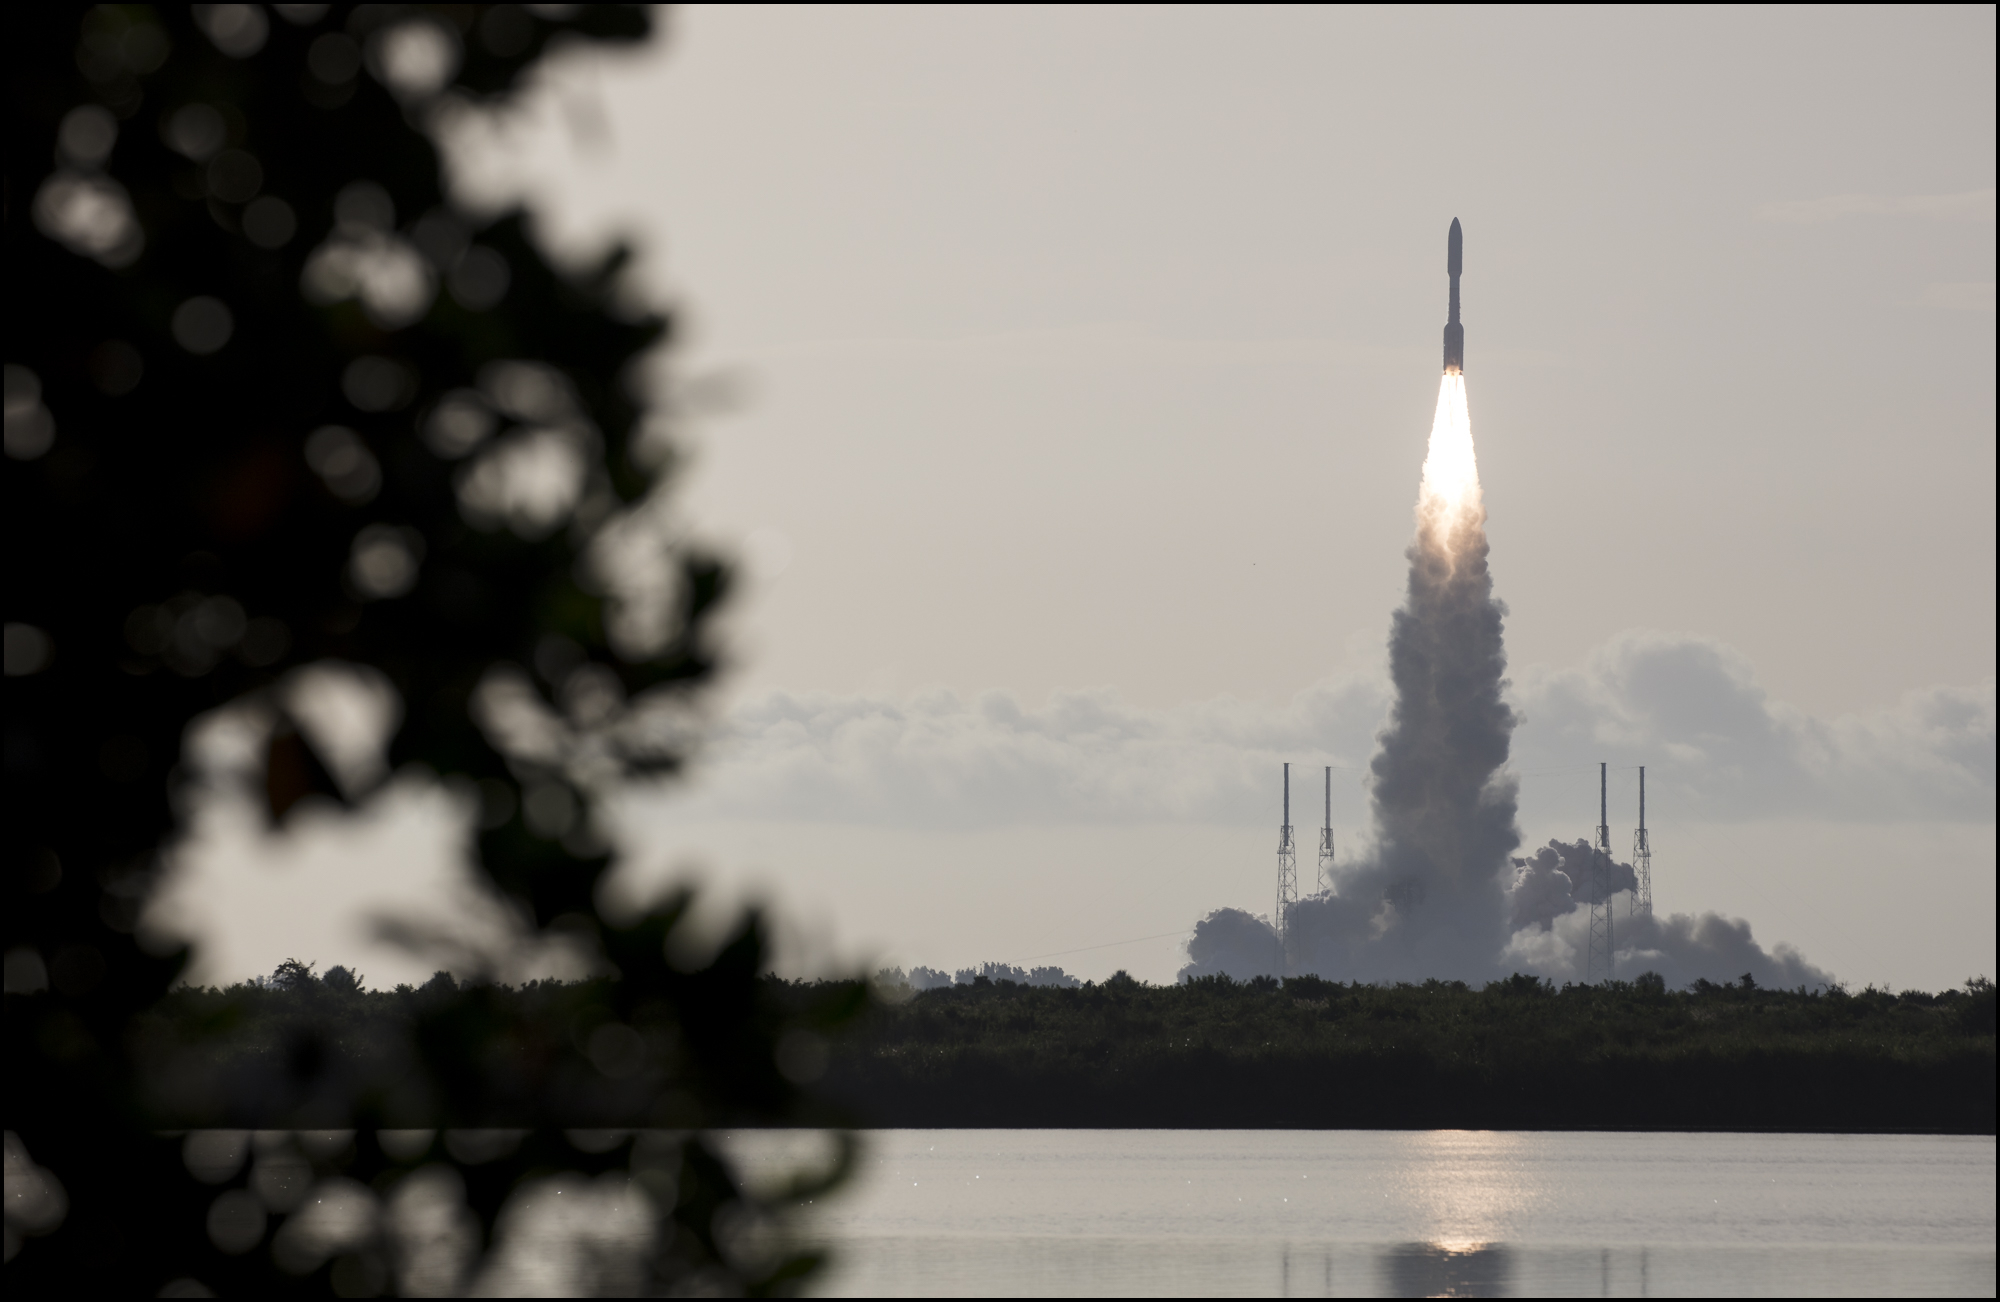 Mission To Mars: Successful Launch of Perseverance!